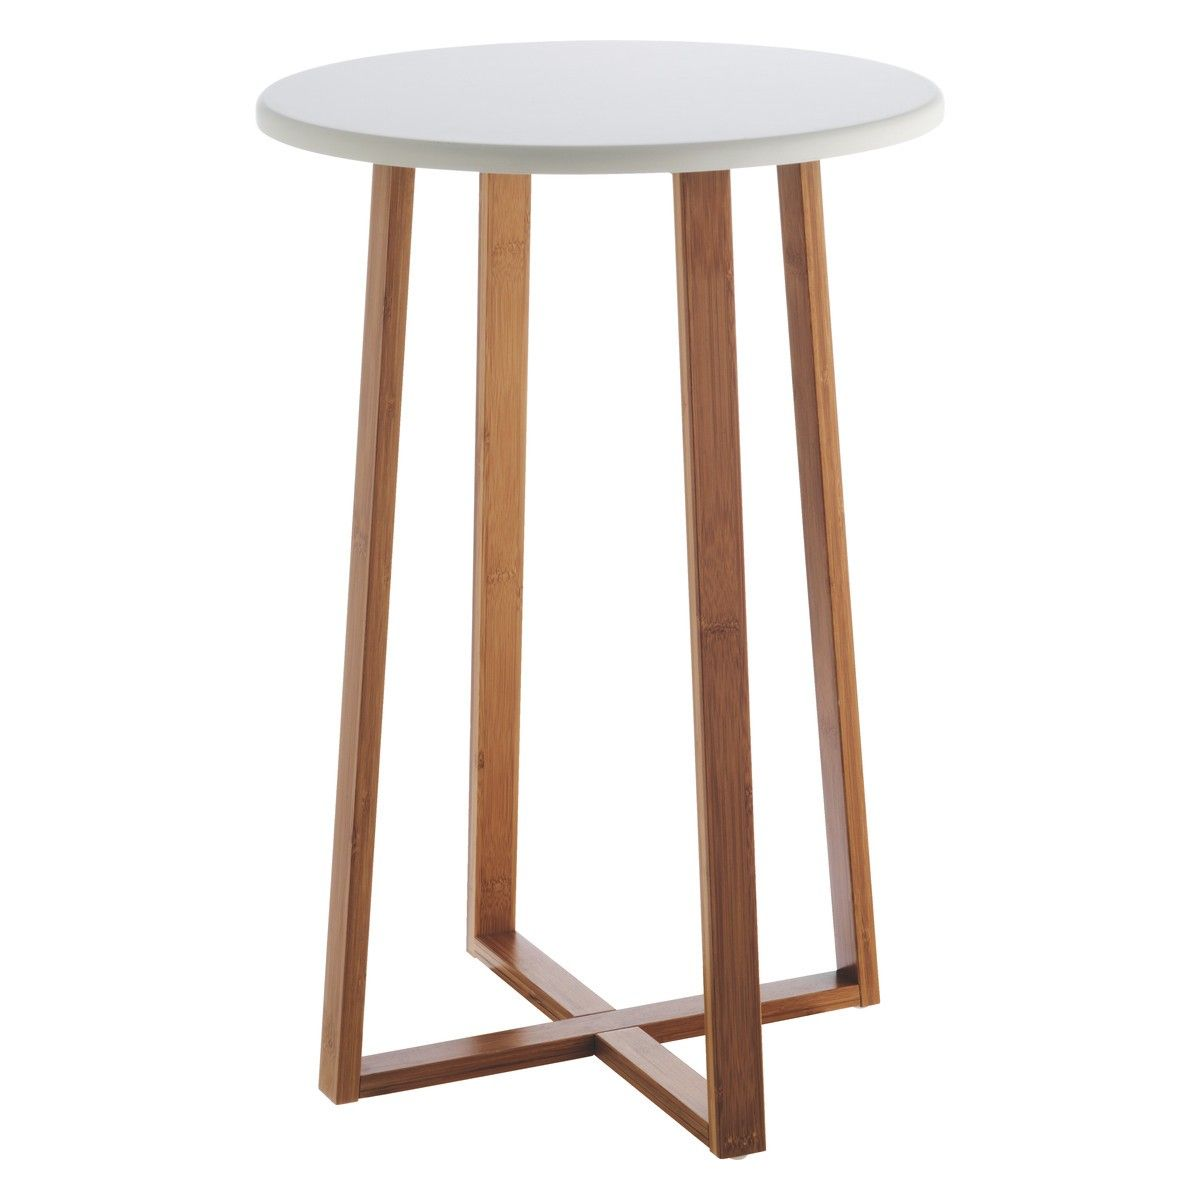 Charmant DREW Bamboo And White Lacquer Tall Side Table